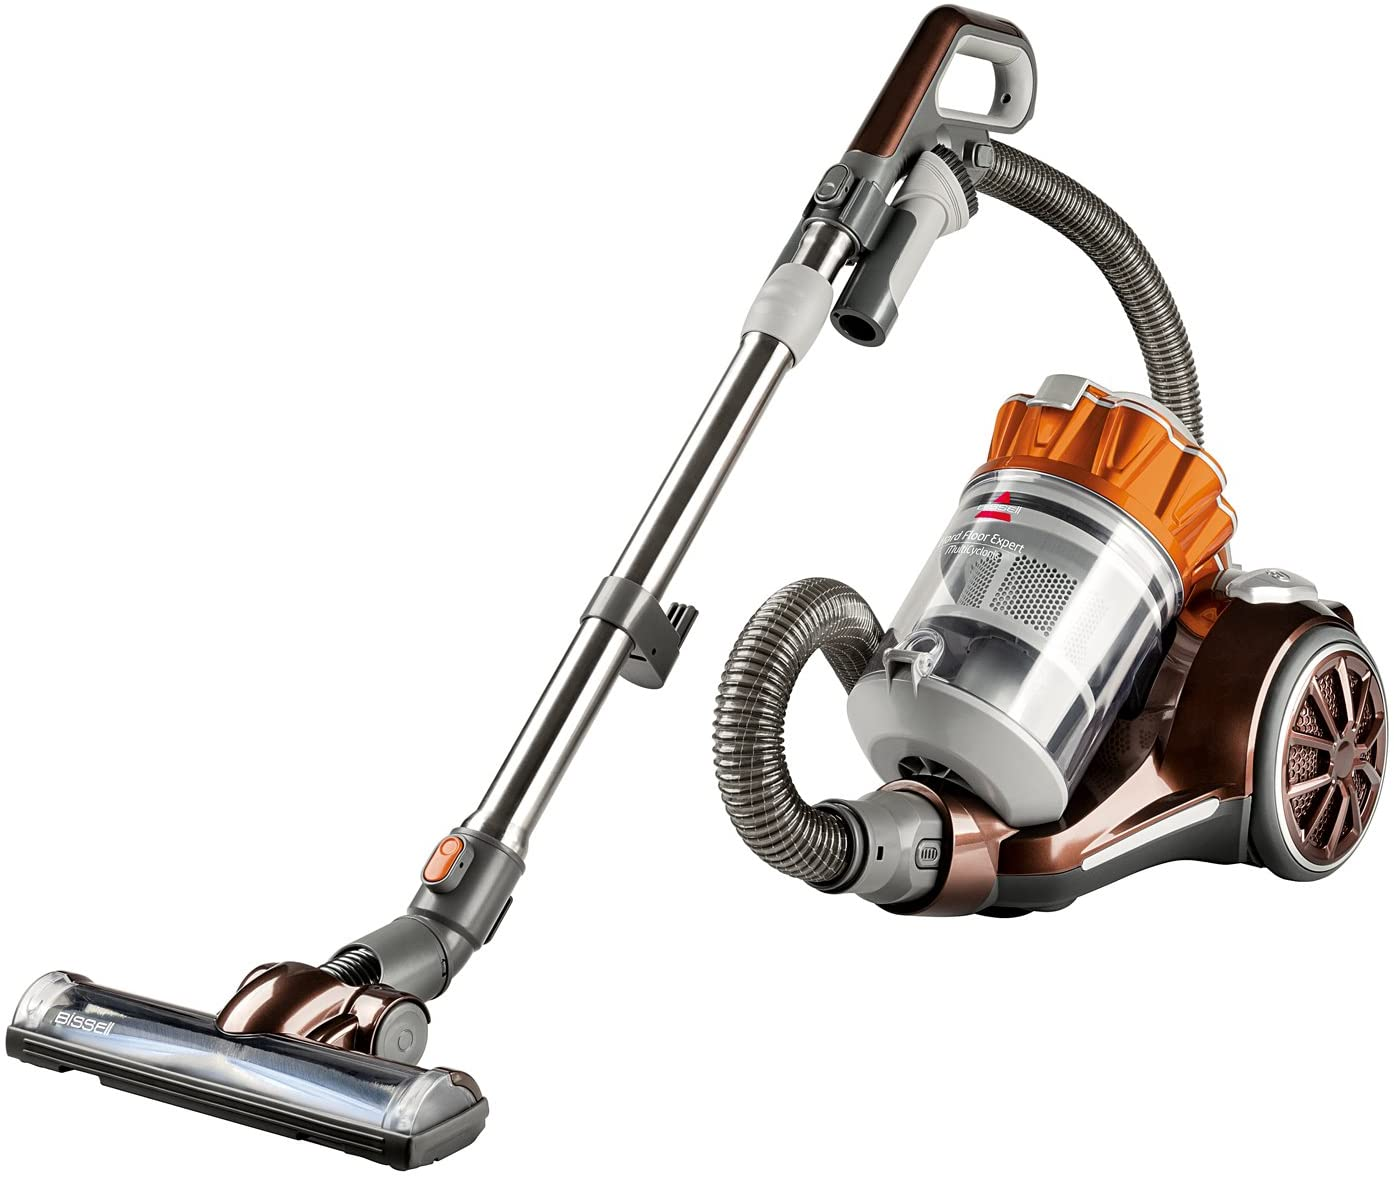 Review of Bissell Hard Floor Expert Multi-Cyclonic Bagless Canister Vacuum, 1547 - Corded